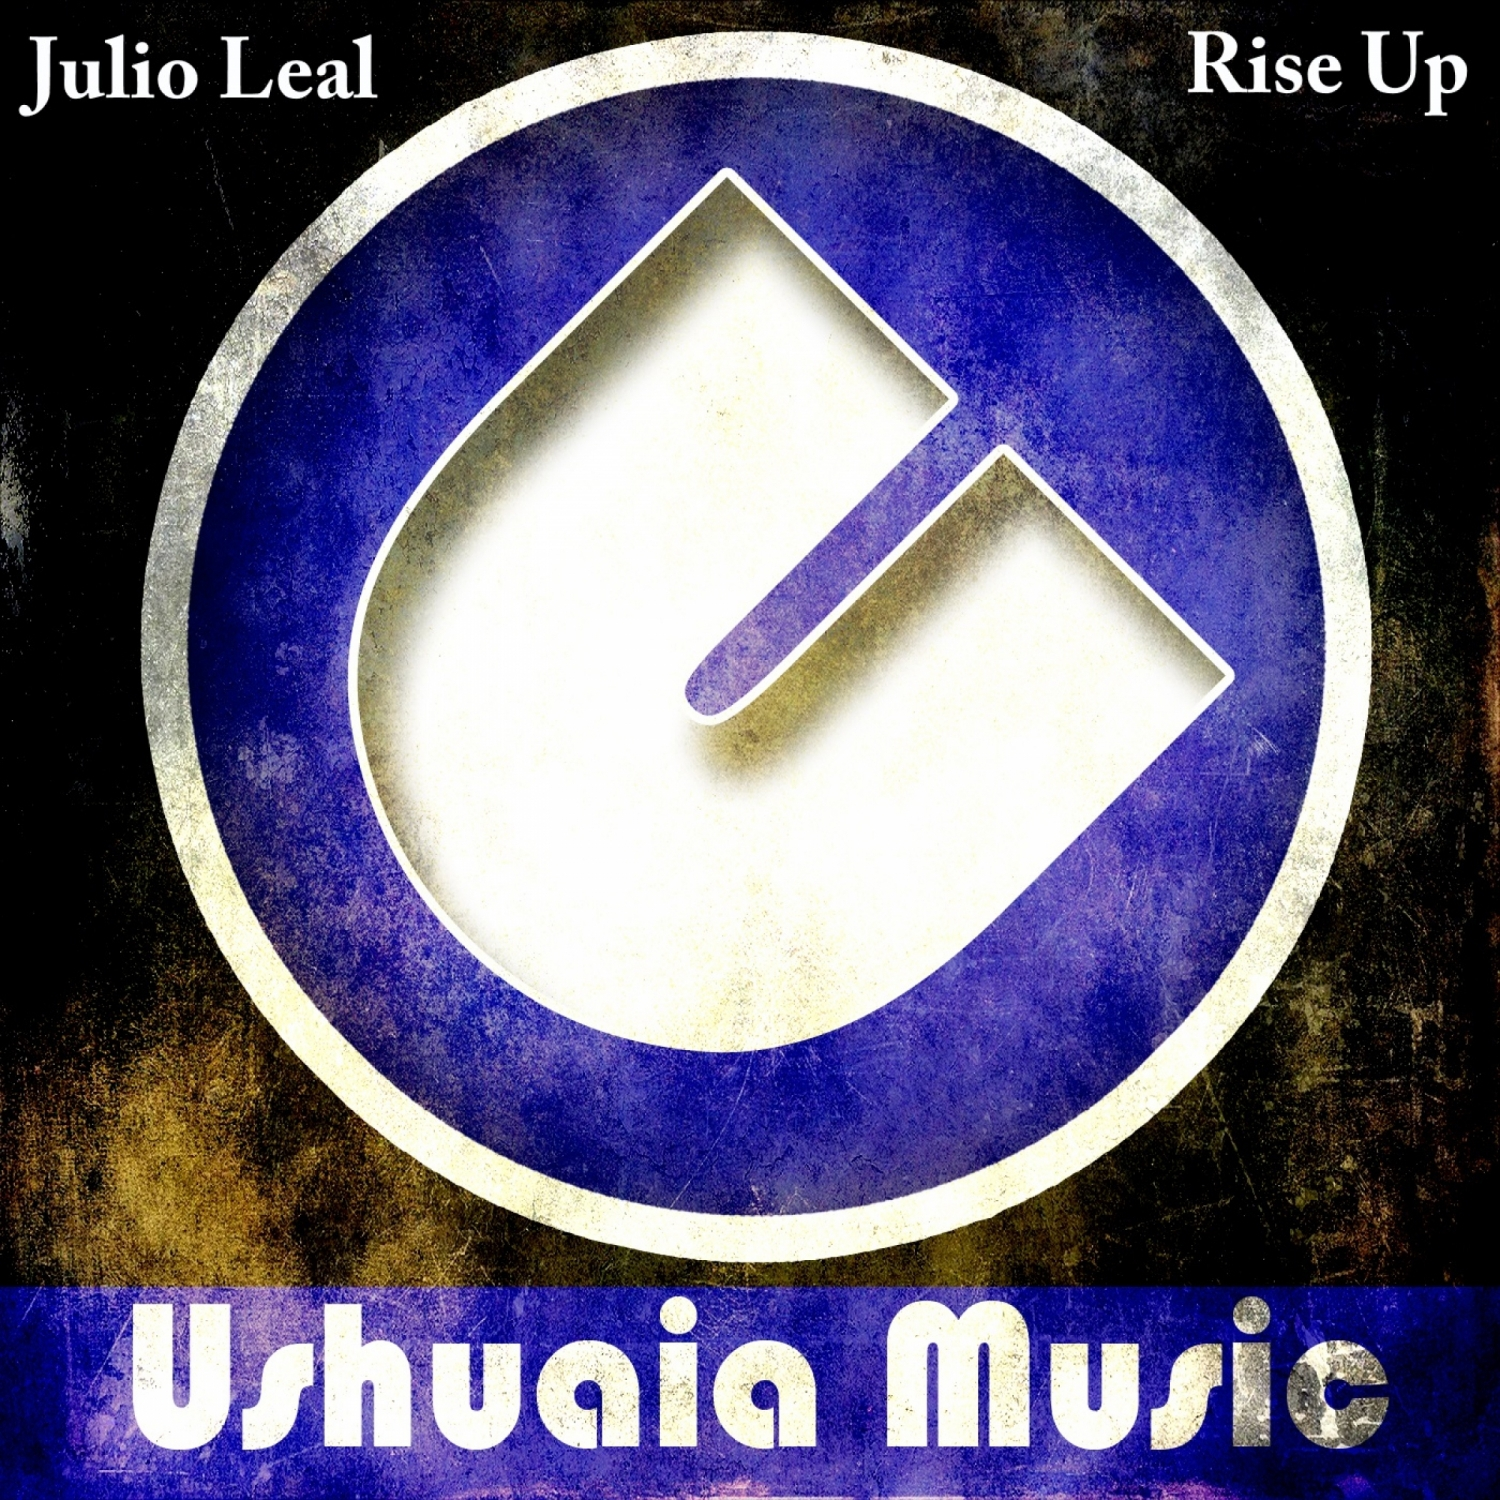 Julio Leal - Flow (Original Mix)